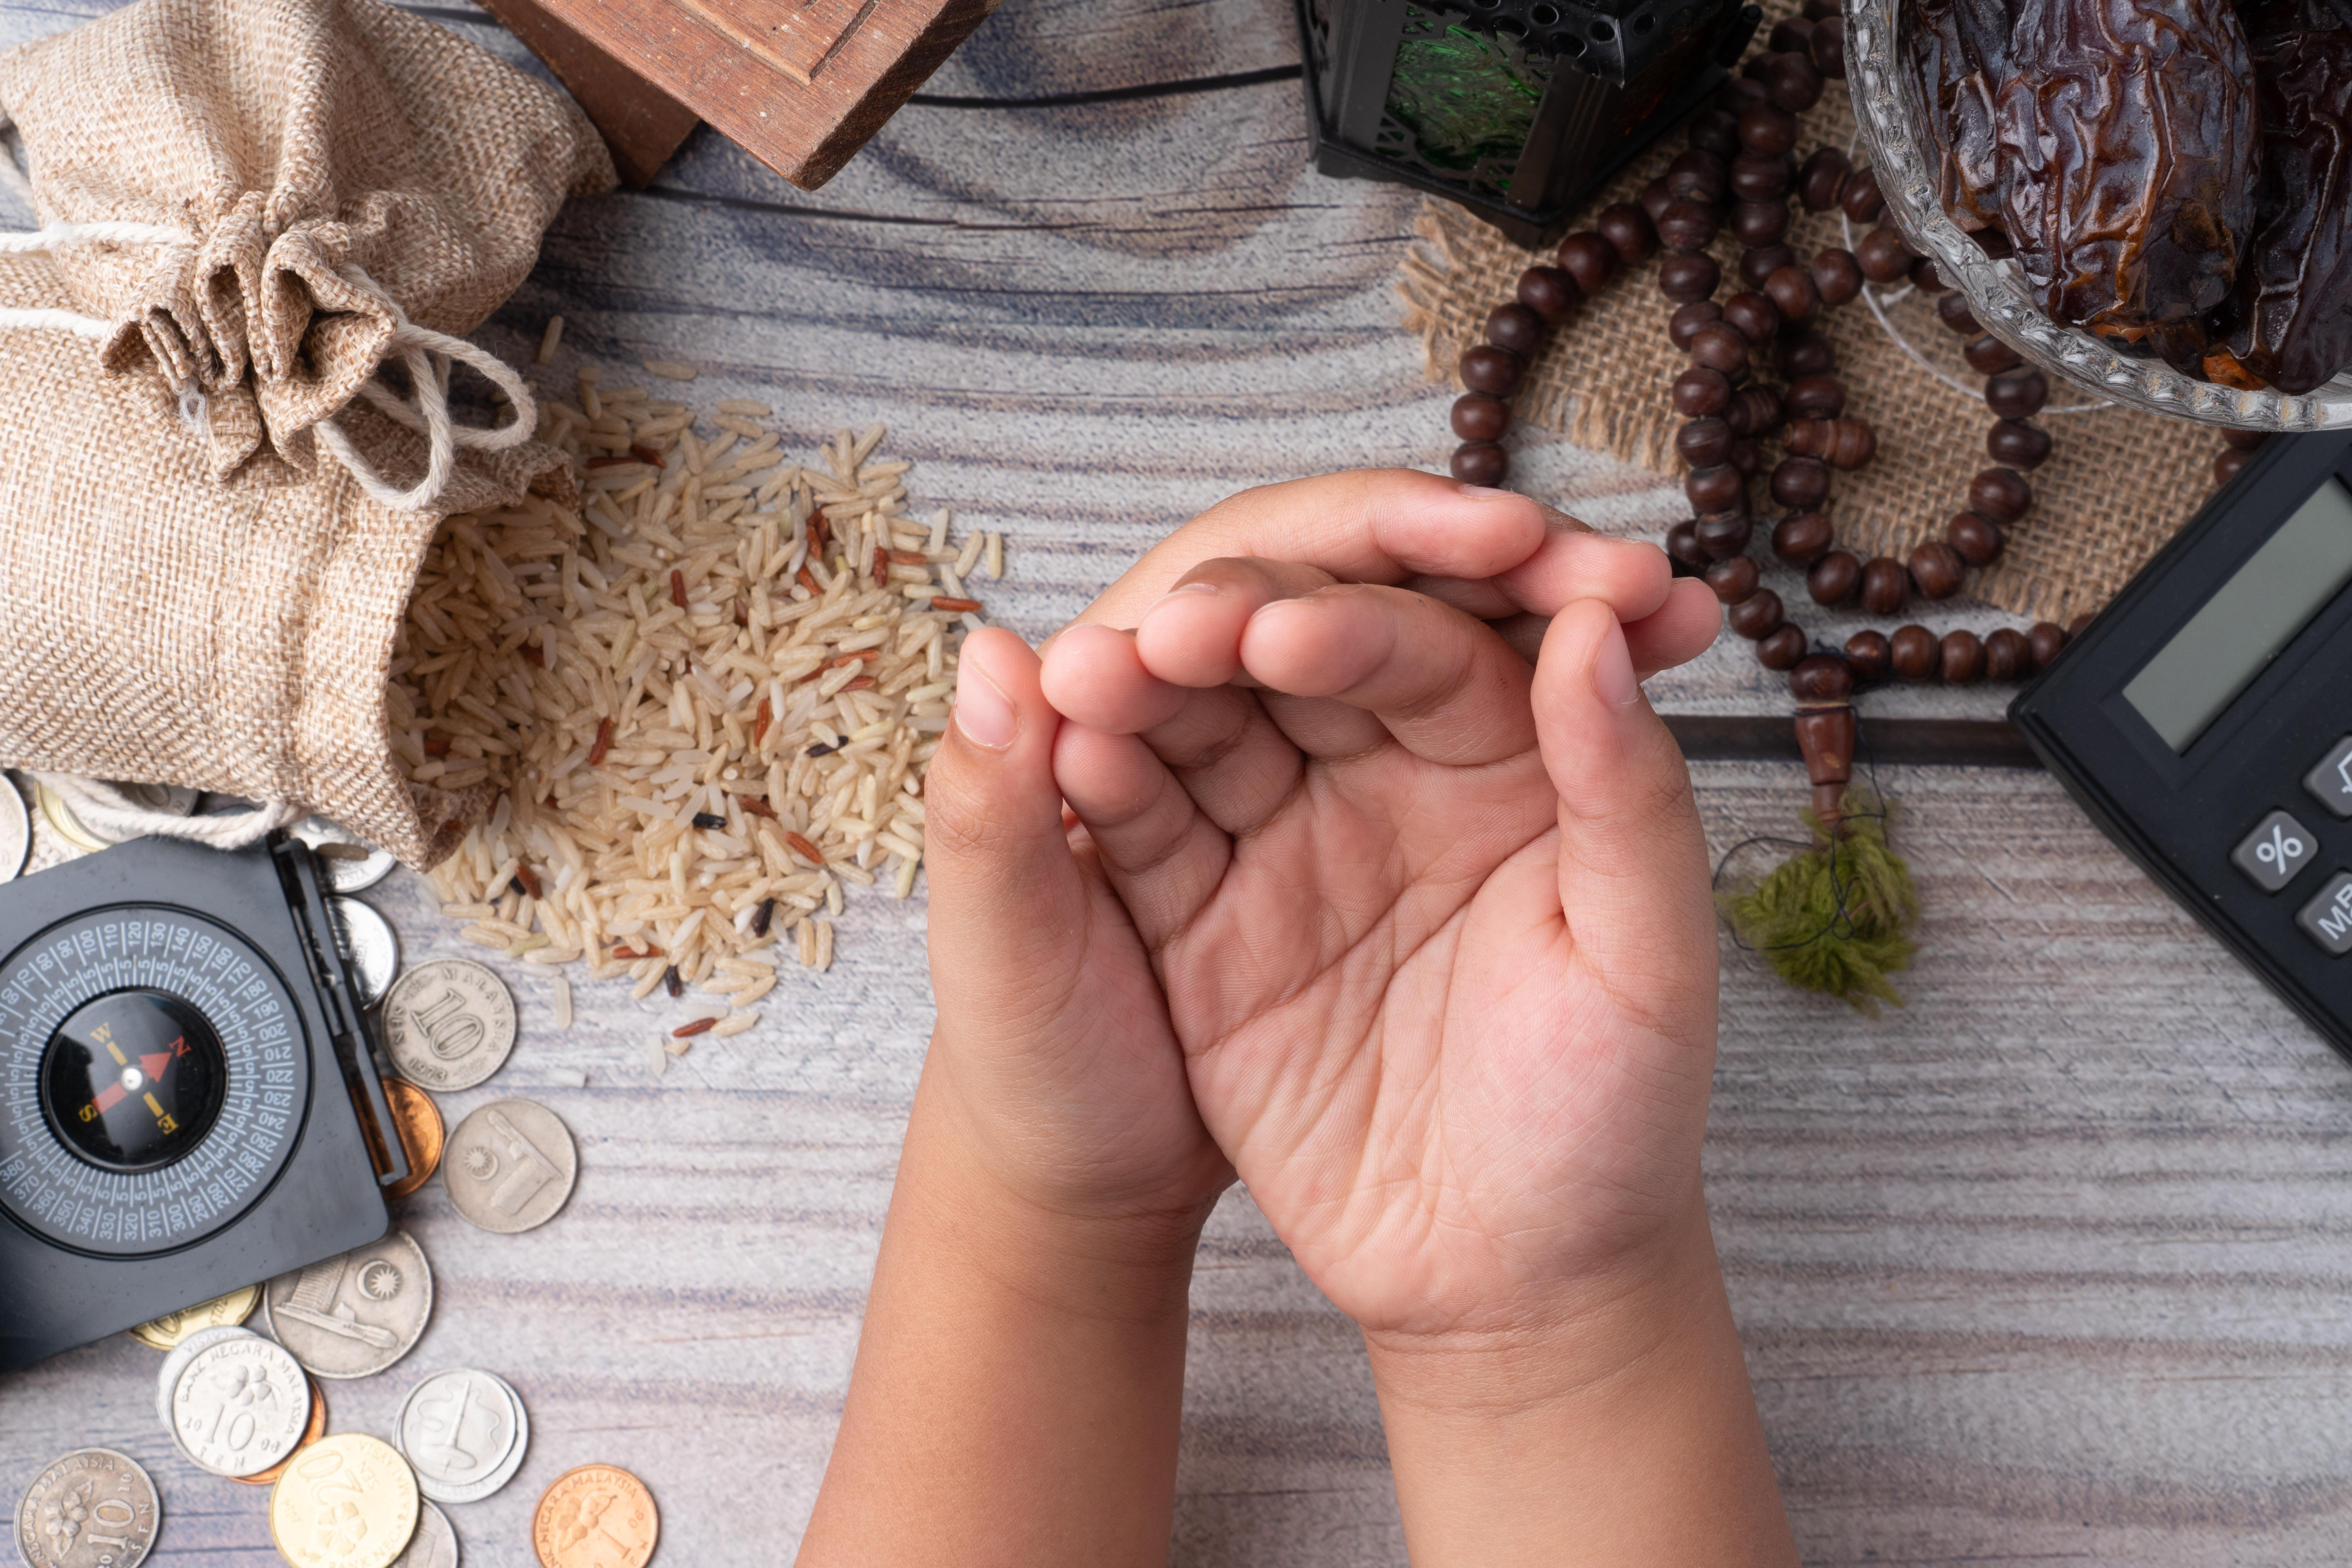 Child's hands cupped with rice, money and rosary in the background